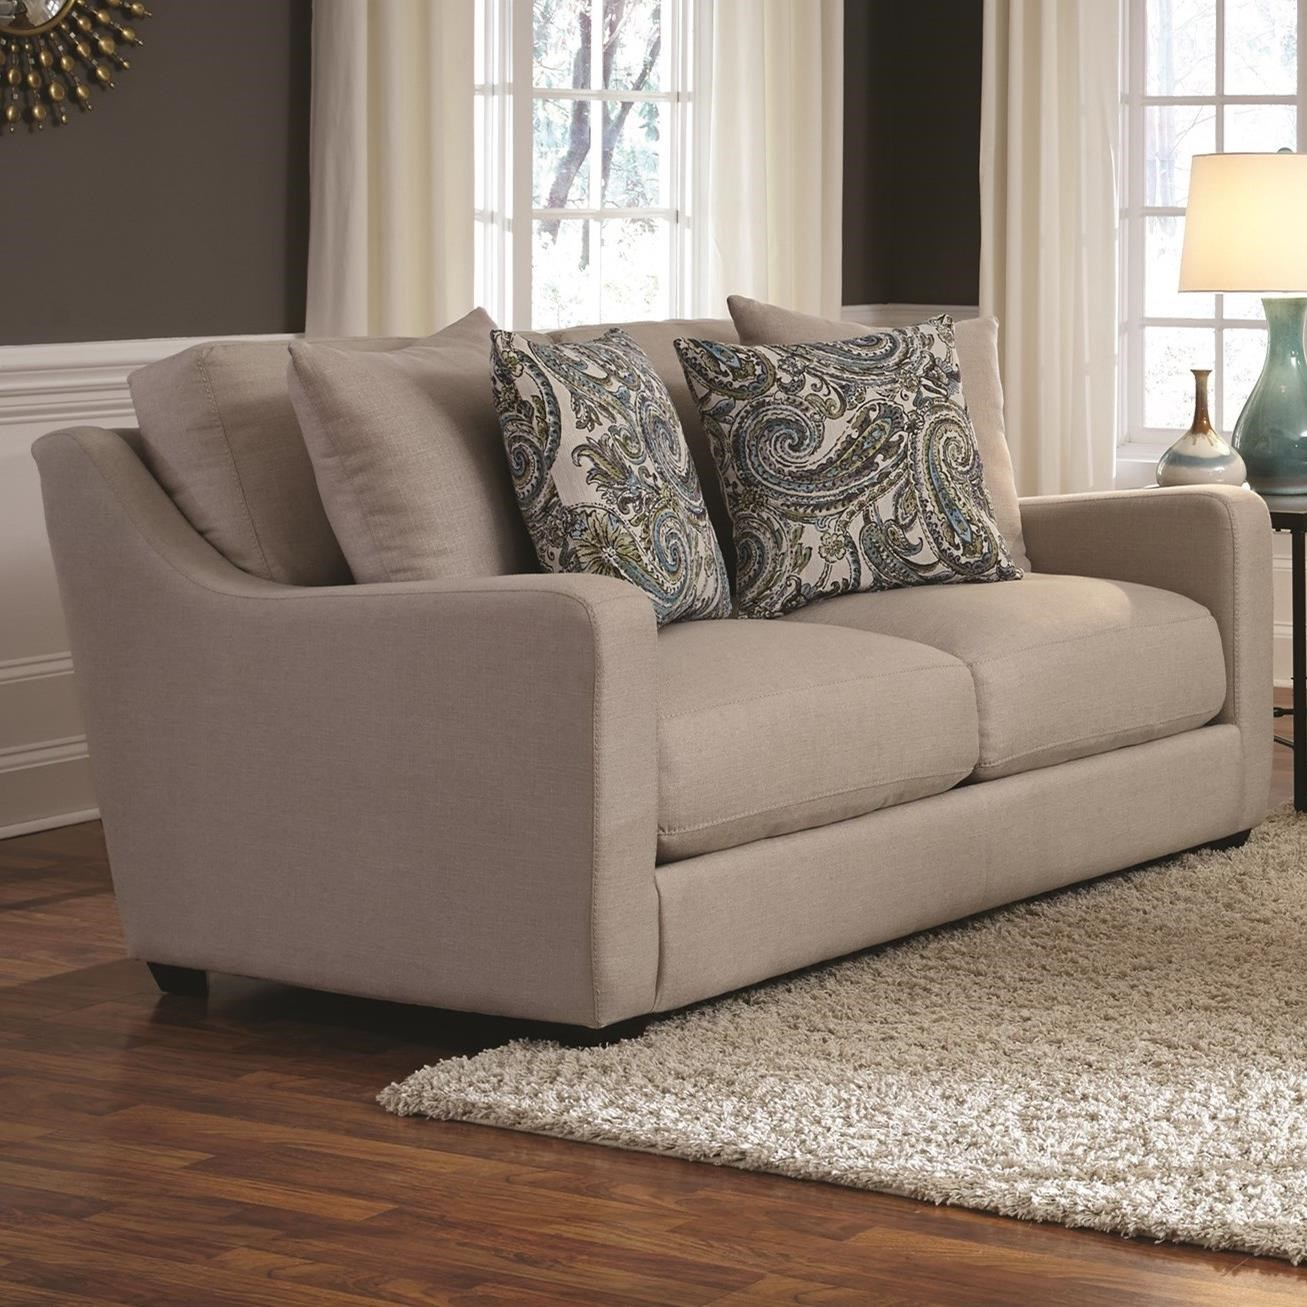 Loveseat 885 By Franklin Wilcox Furniture Love Seats Corpus Christi Kingsville Calallen